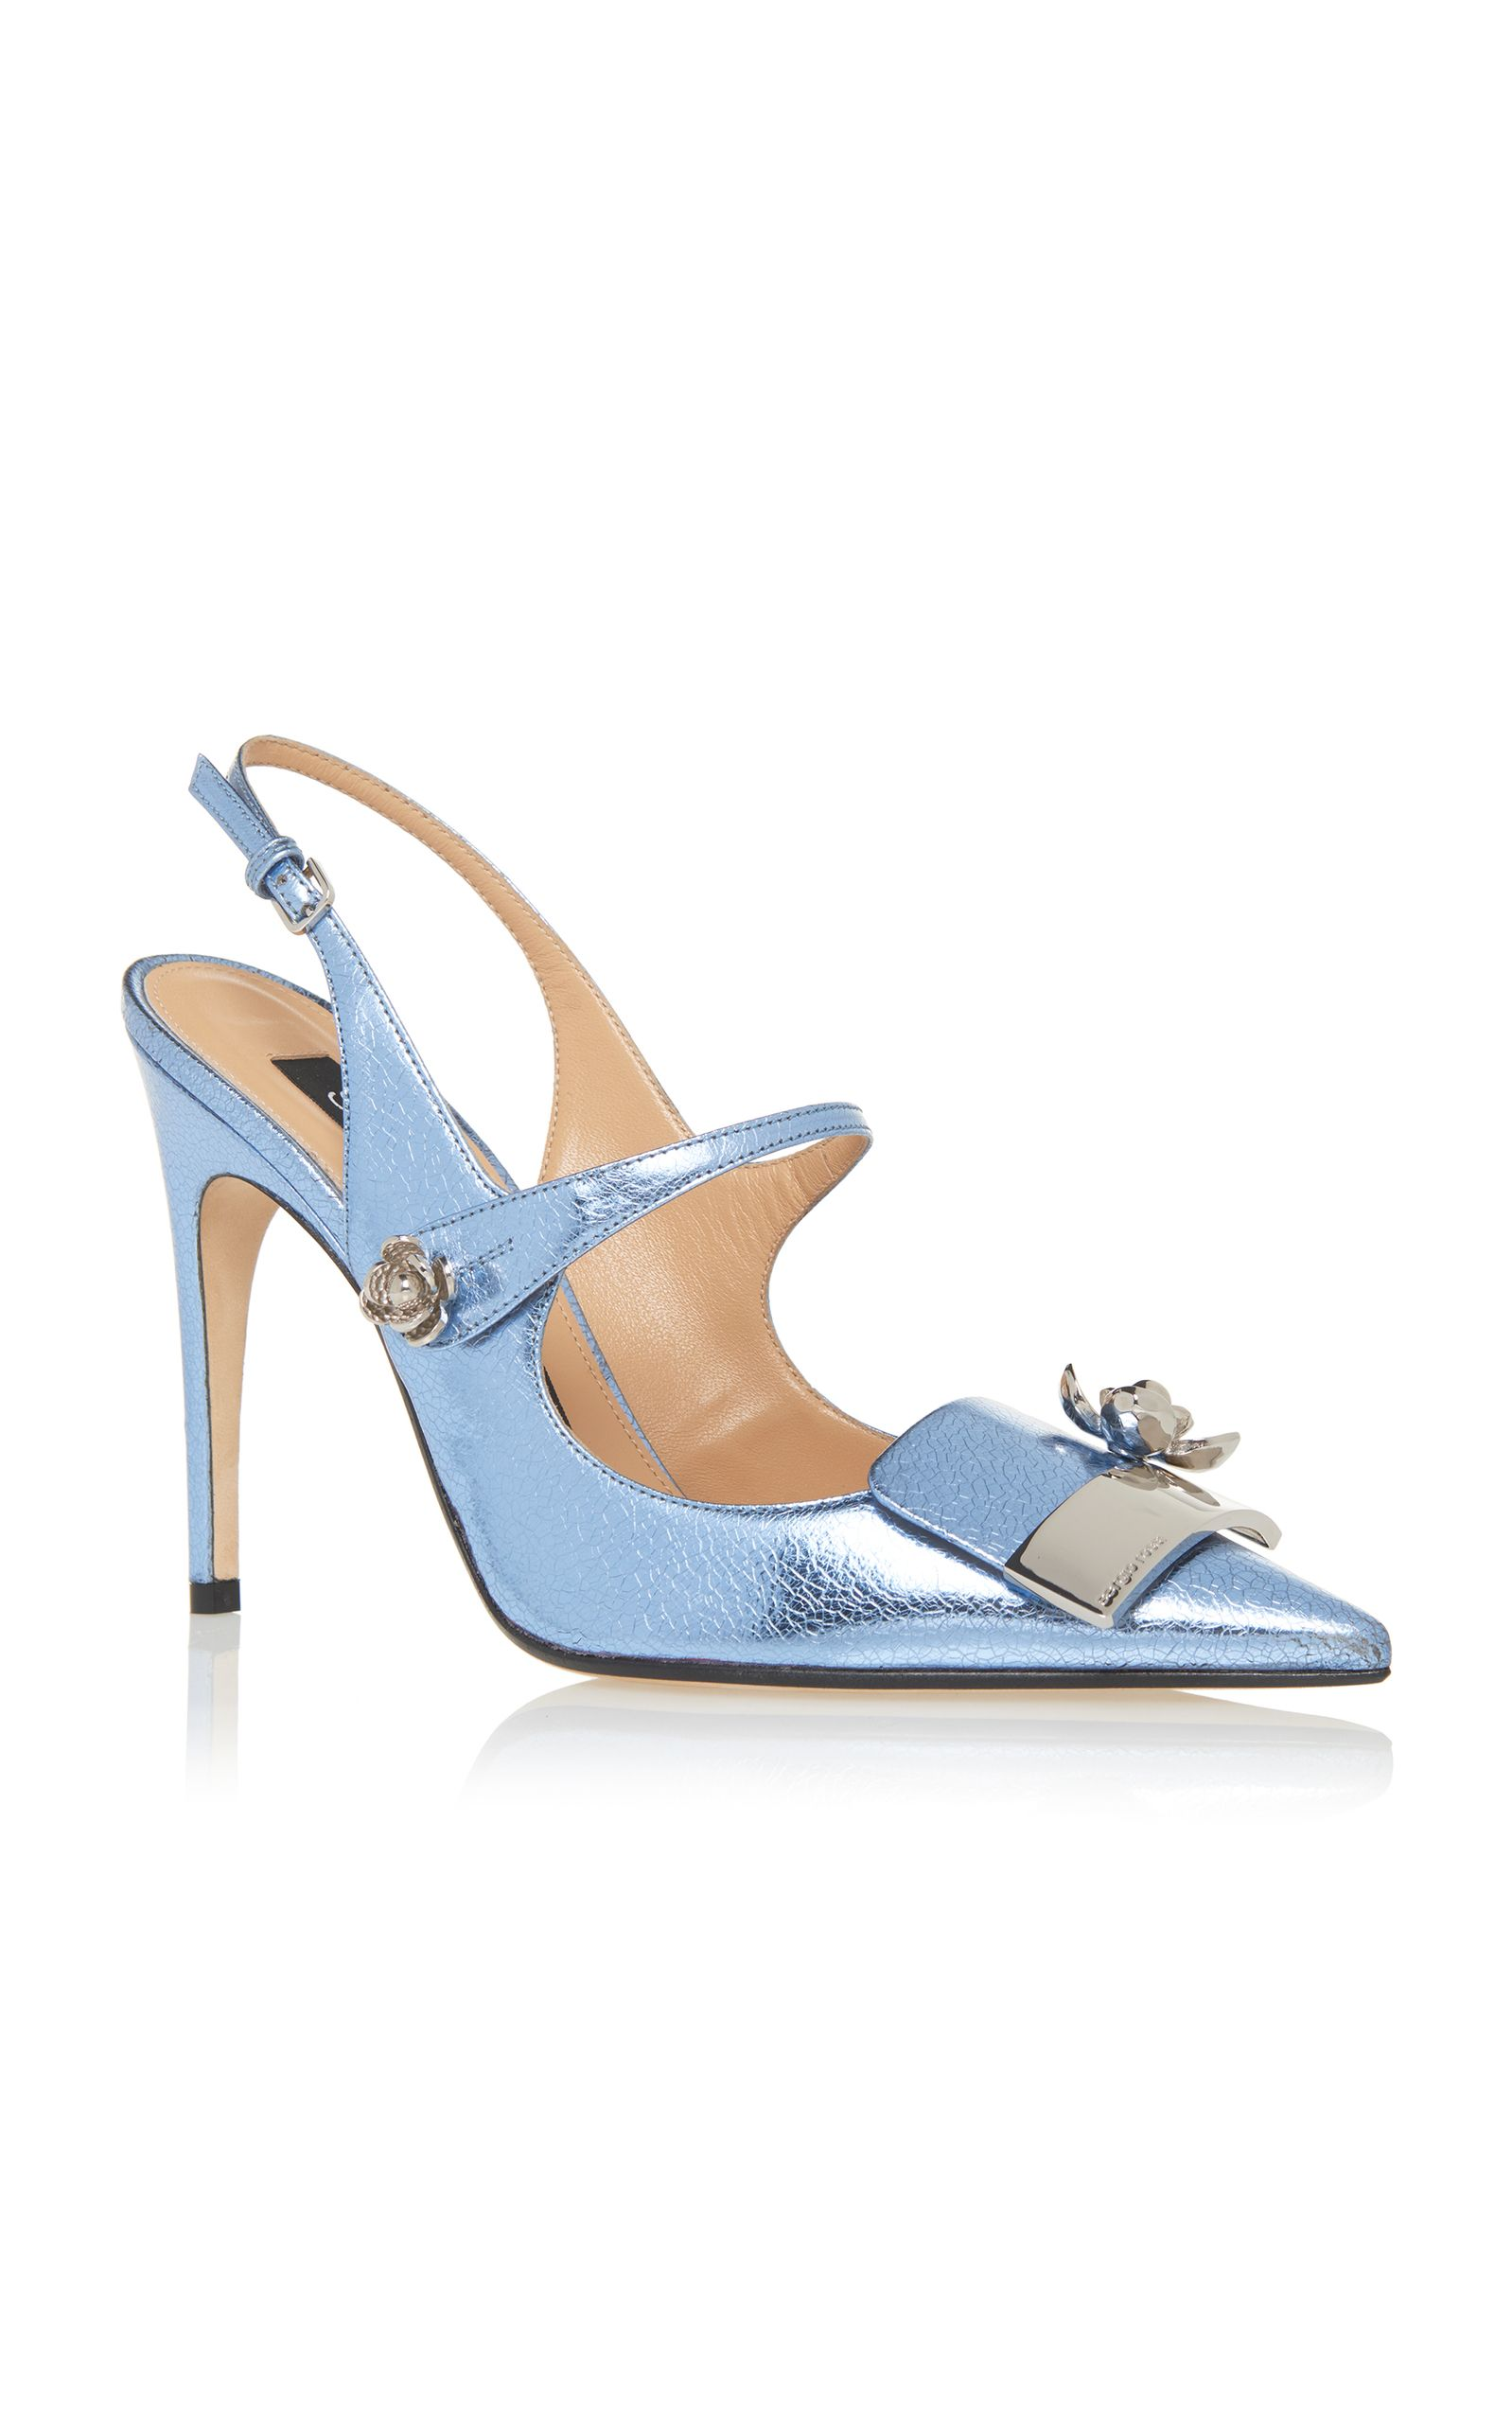 Sergio Rossi Bi-Color Bow Pumps visit for sale new styles cheap price outlet get to buy tLgD1cb8x